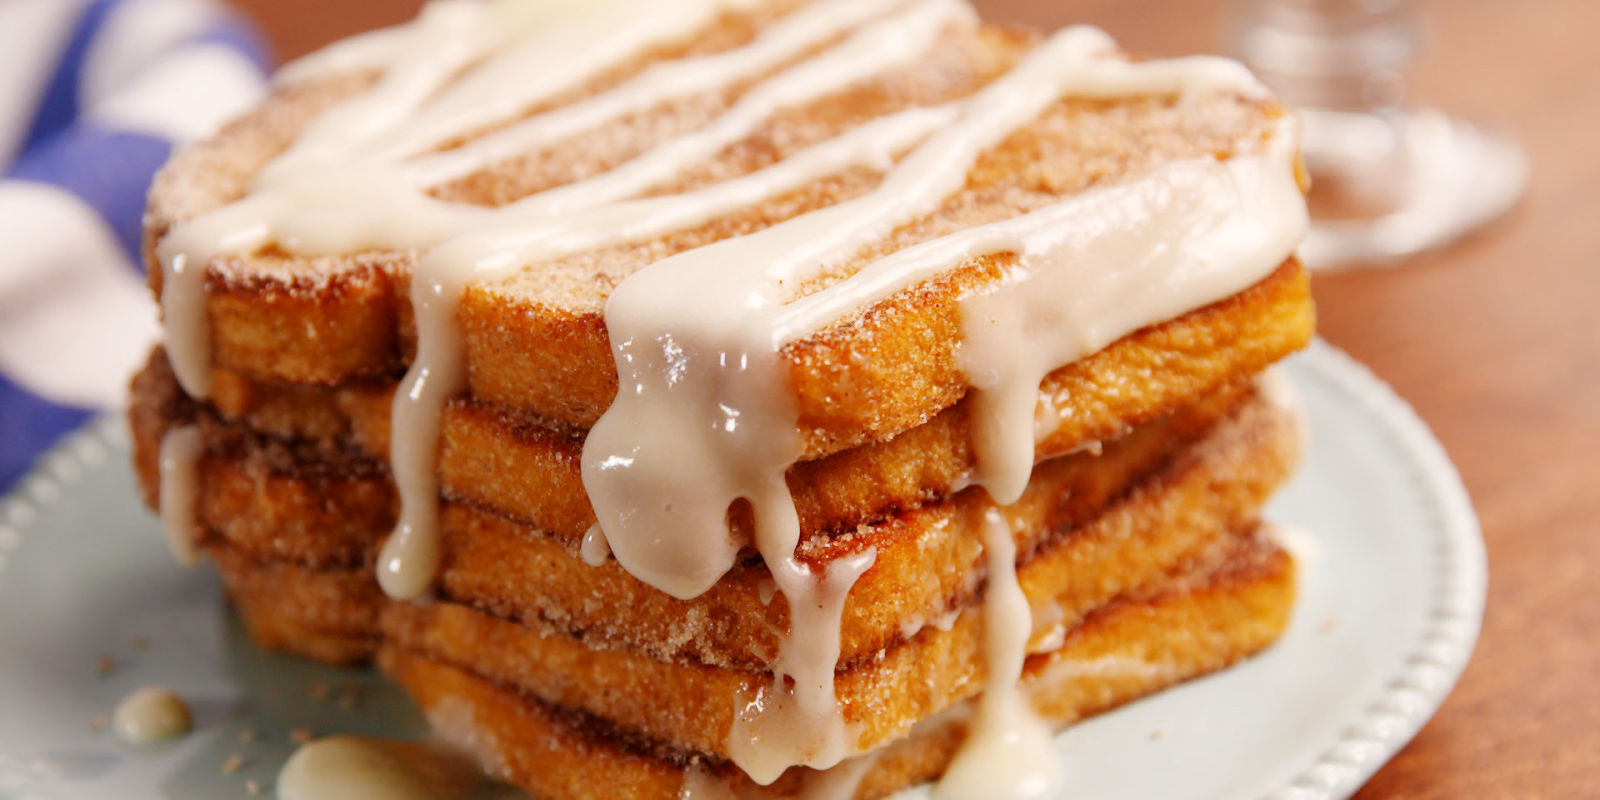 Easy French Toast Recipe - Made with milk, eggs, vanilla, and a pinch of cinnamon, making French toast is very easy to pull together for a wonderful breakfast.